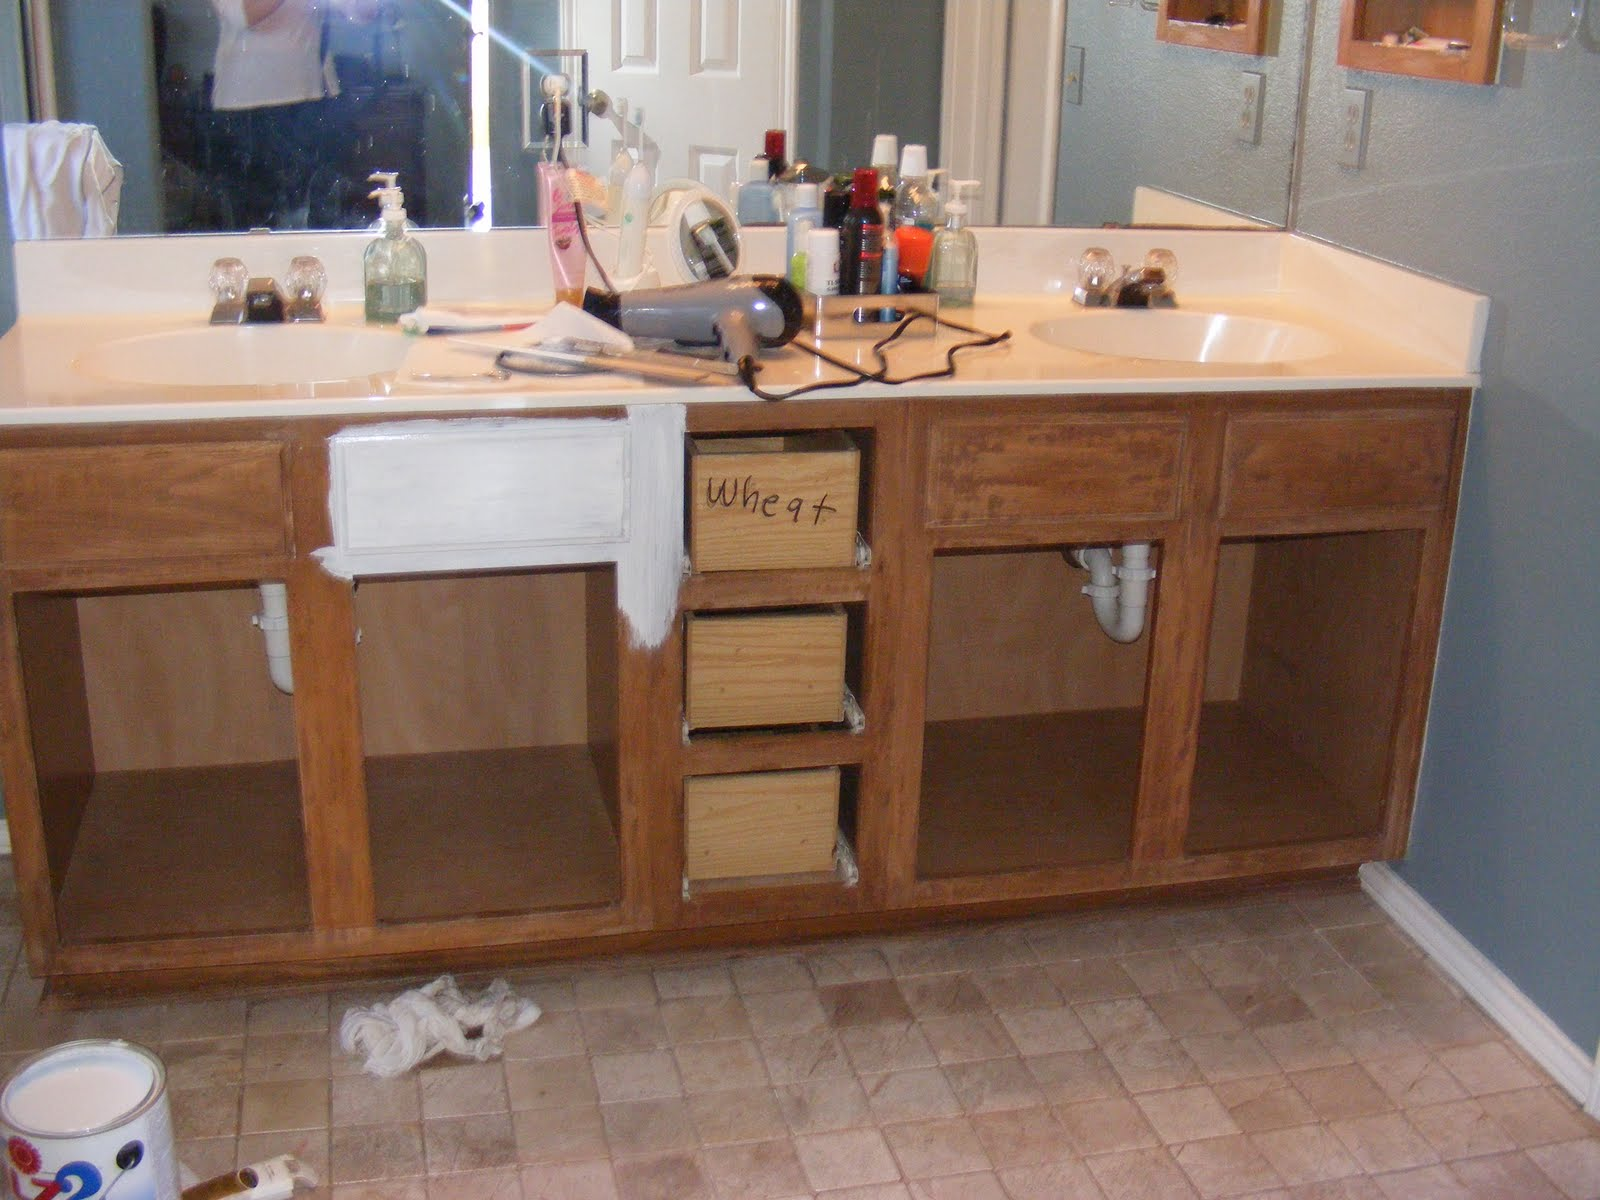 Painted Bathroom Vanity Red 39s Rave How To Strip And Paint Your Bathroom Vanity